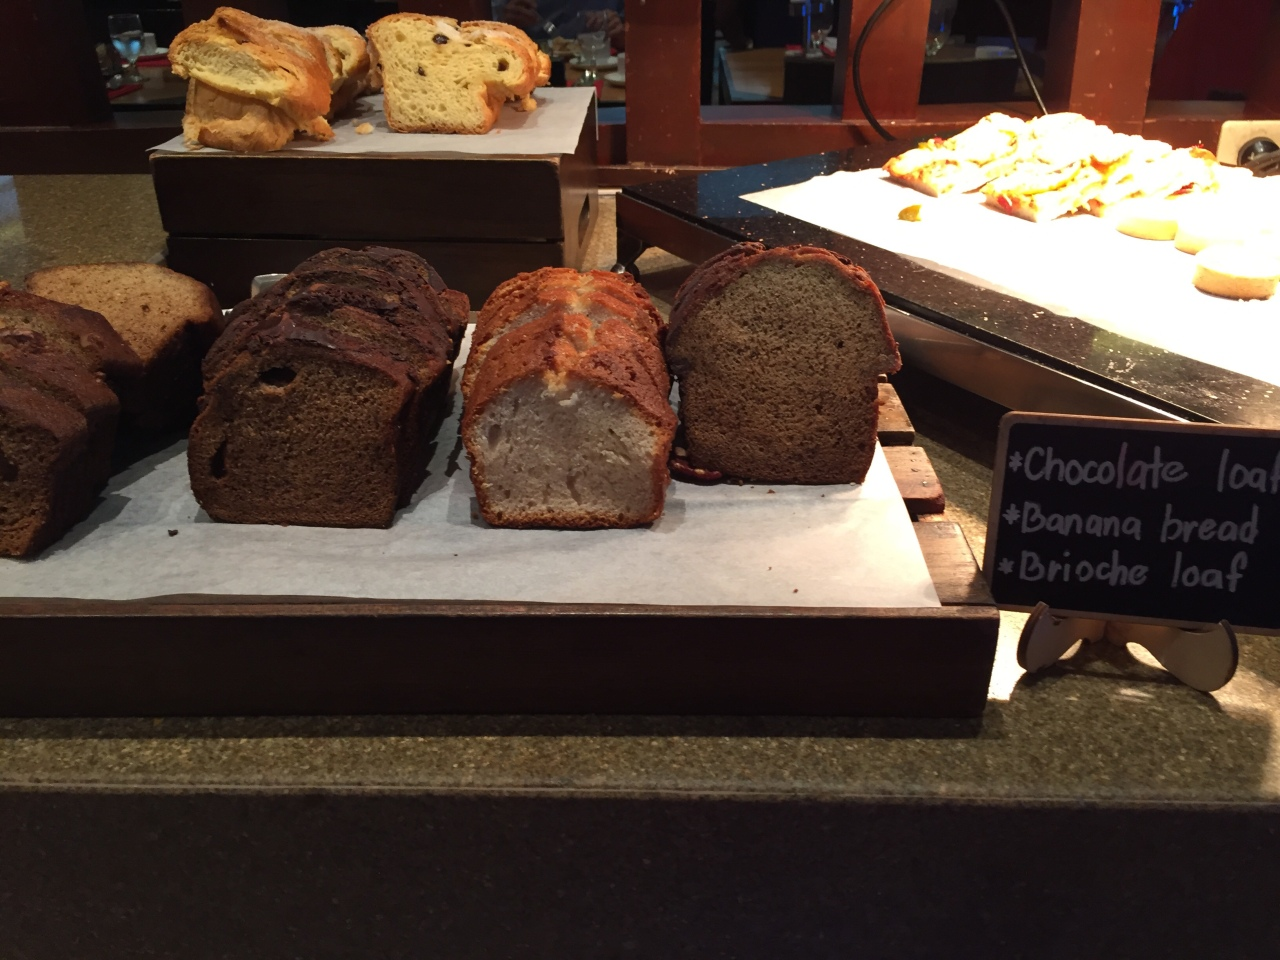 Chocolate loaf and banana bread